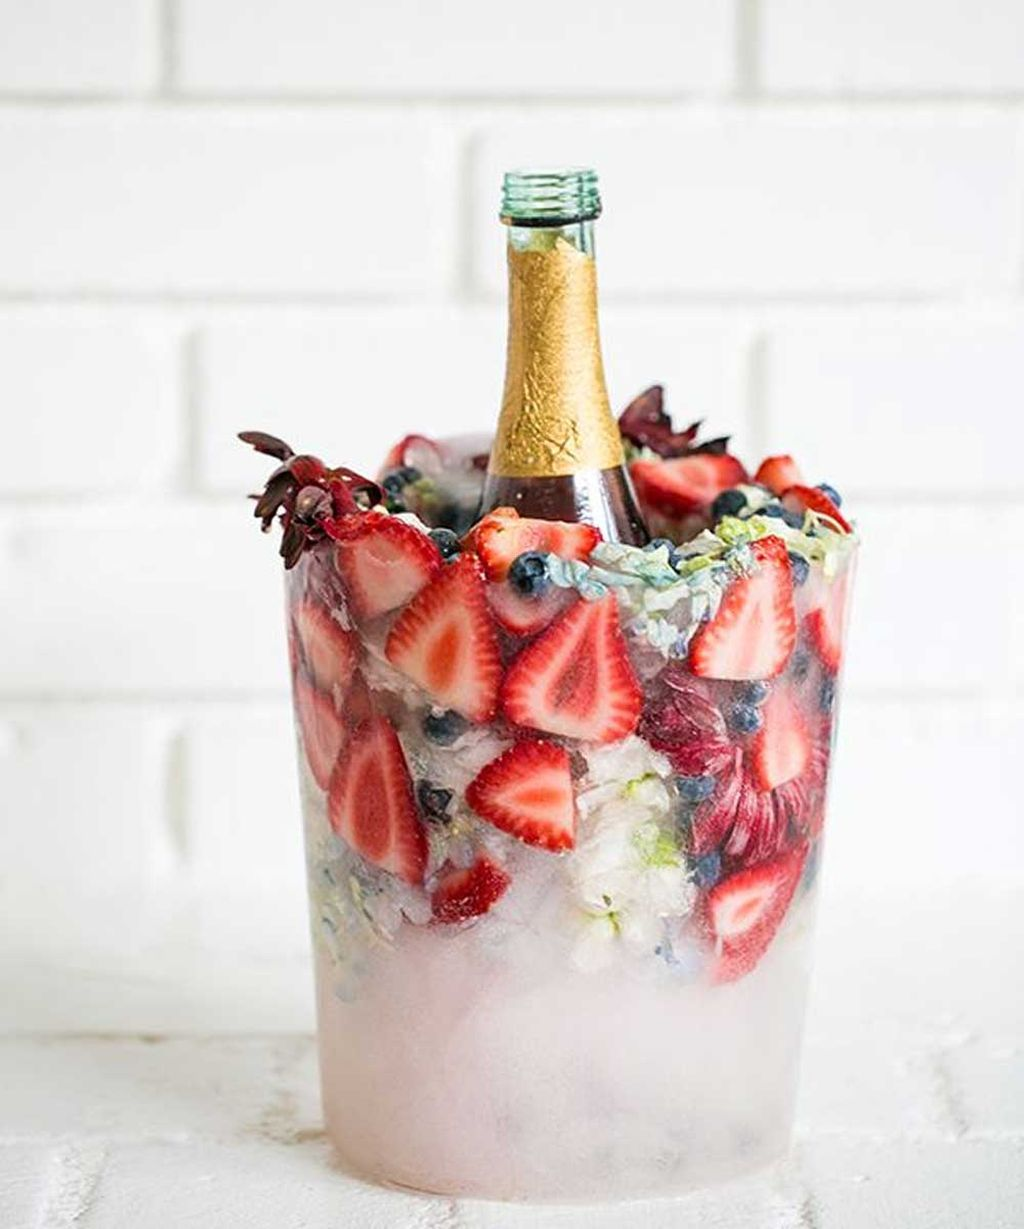 There S A New Mdash And Infinitely Prettier Mdash Nbsp Kind Of Ice Bucket Challenge This Summer That S Floral Ice Bucket Floral Ice Wine Chiller Bucket